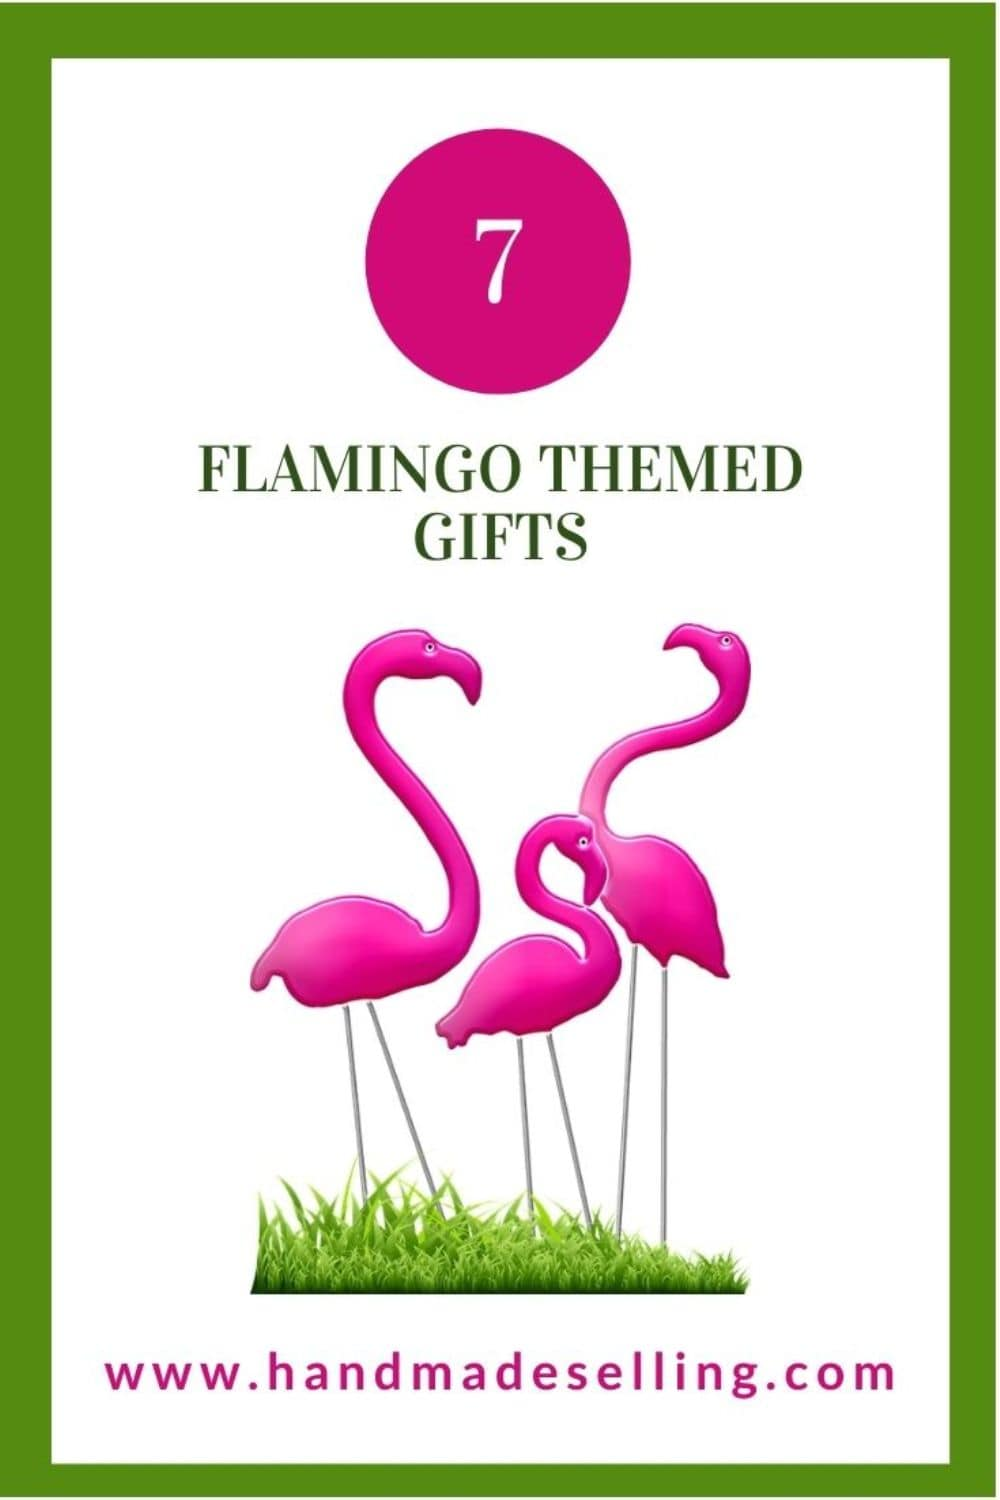 flamingo themed gifts